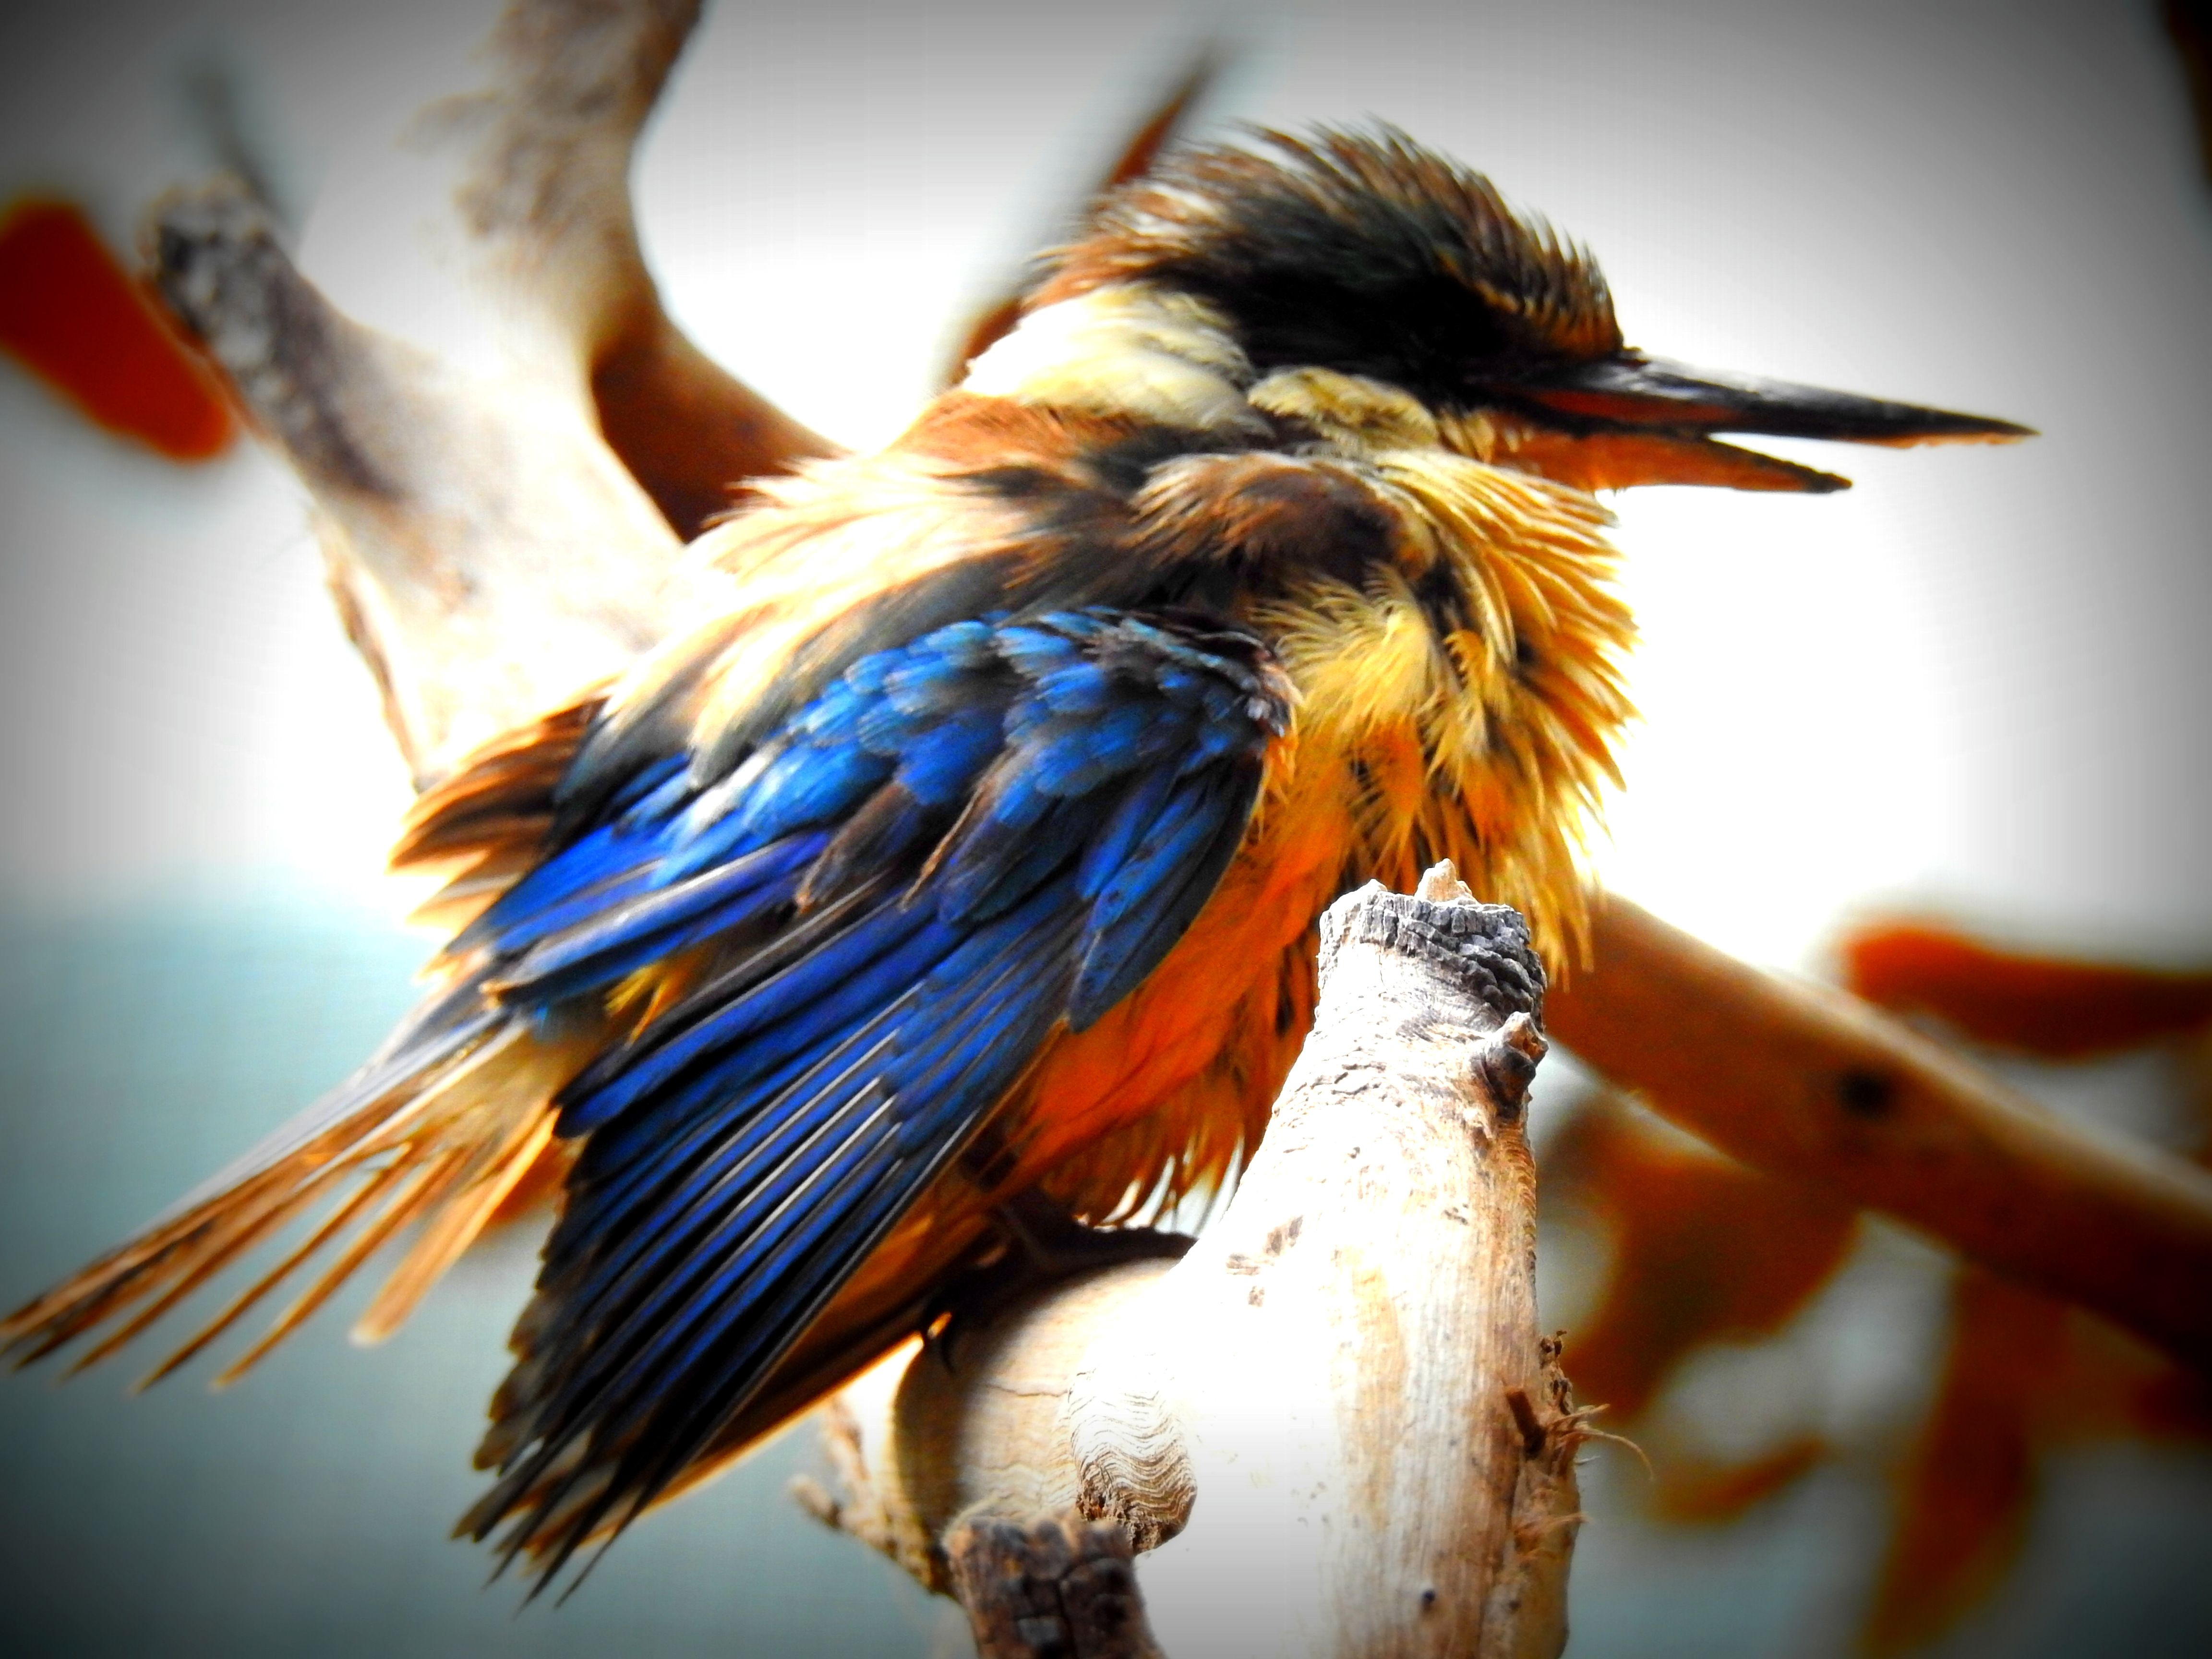 Colourful Bird With Scruffy Feathers Bird Photography Perth